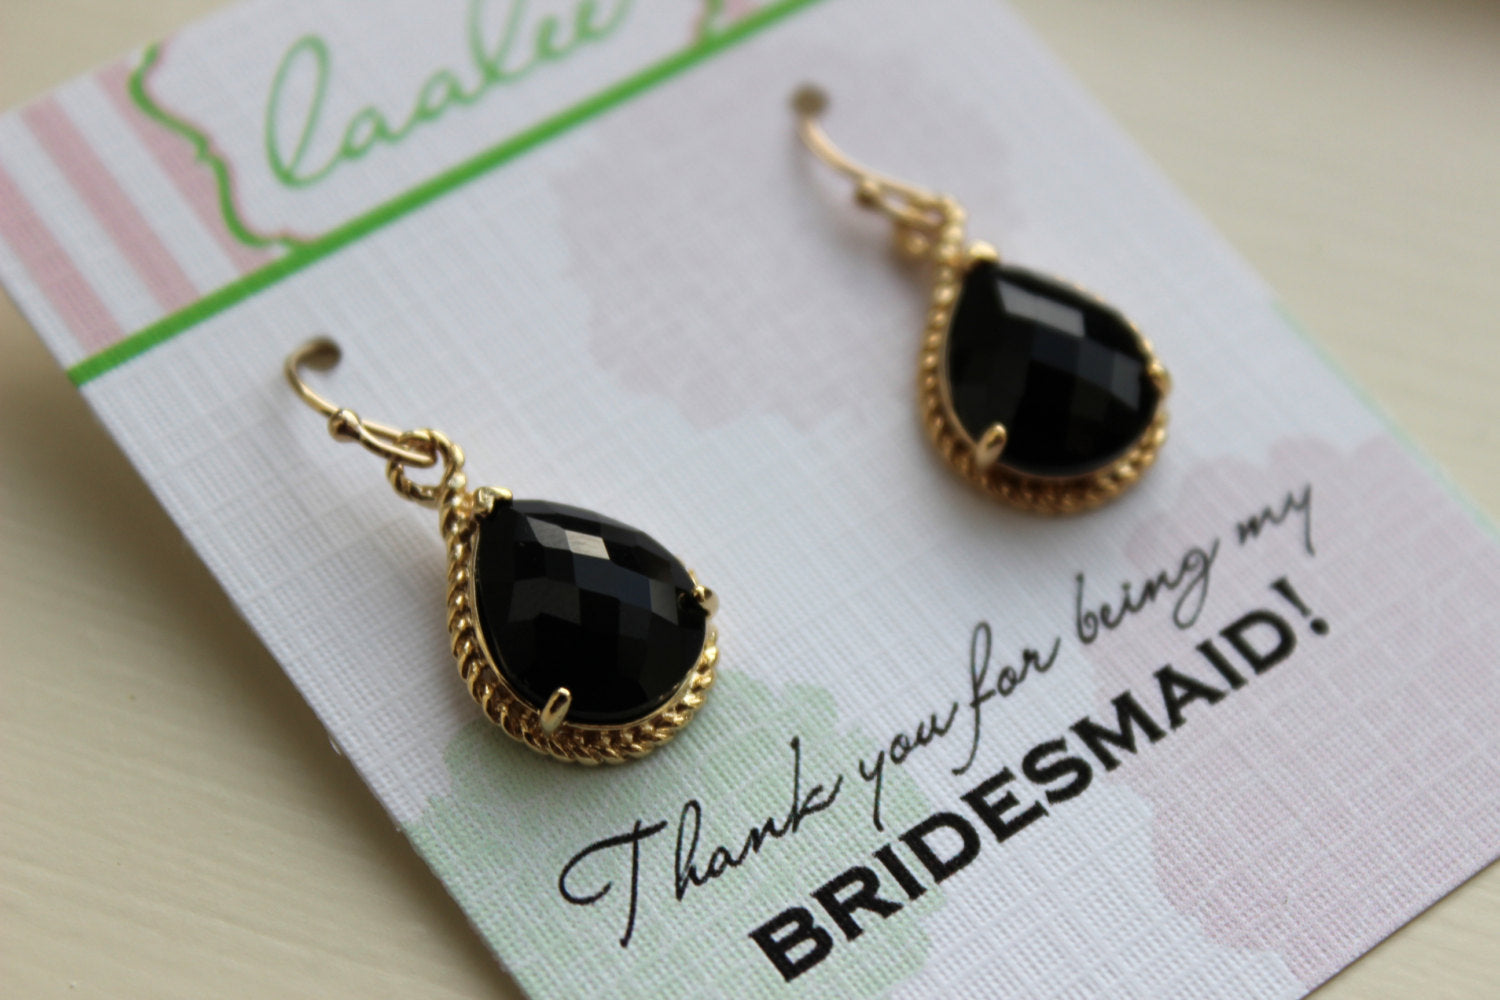 Black Earrings Gold Wedding Jewelry - Jet Black Bridesmaid Earrings Bridesmaid Gift Black Bridal Jewelry Set Personalized Thank You Note